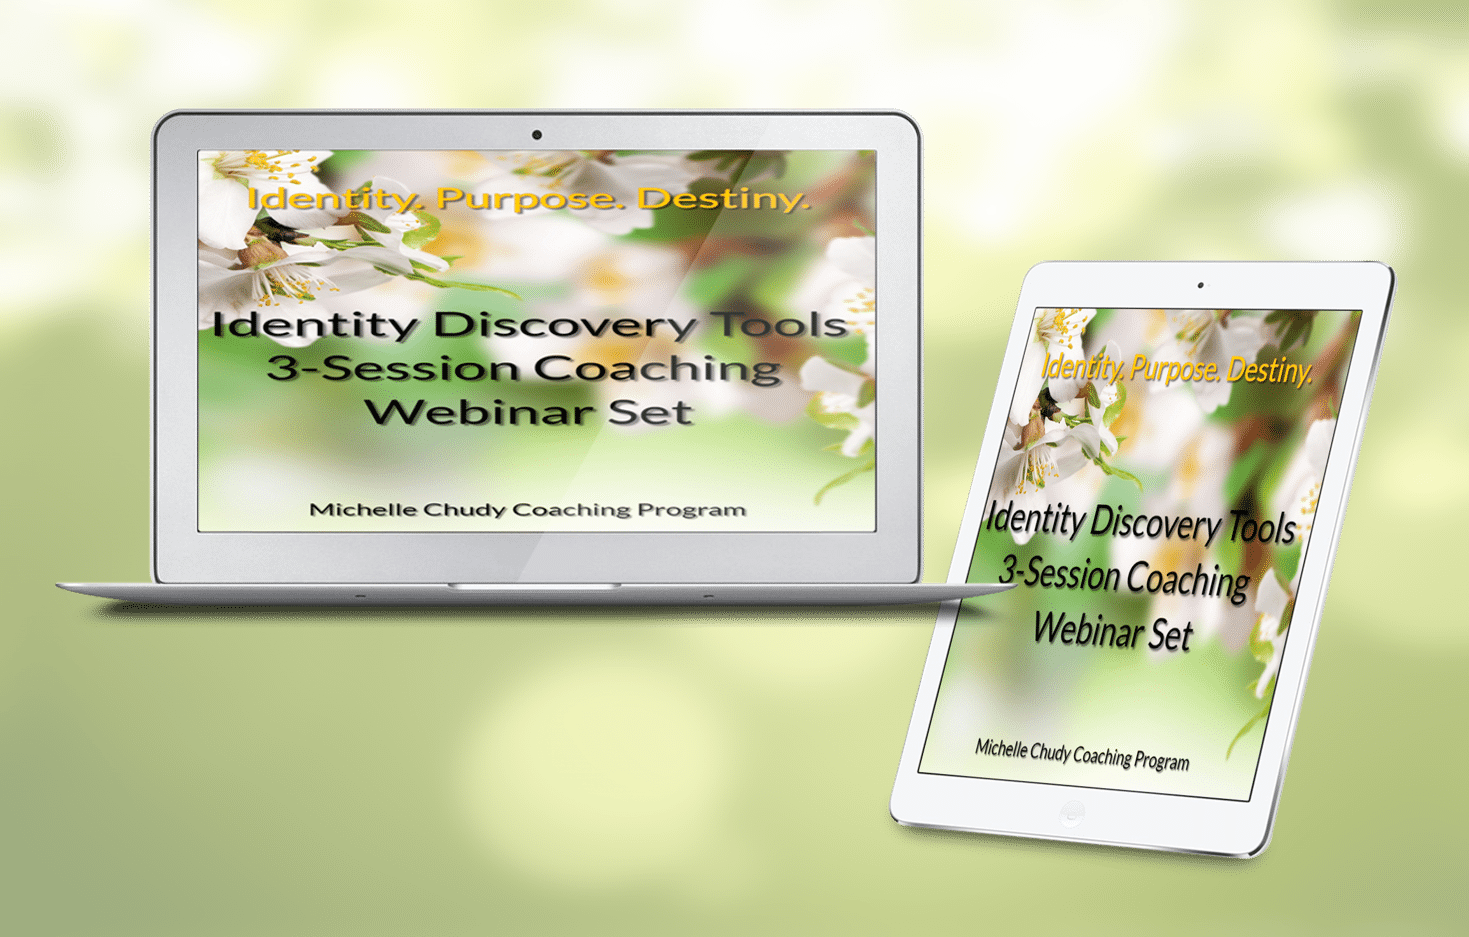 Identity Discovery Tools Webinar Set Gallery